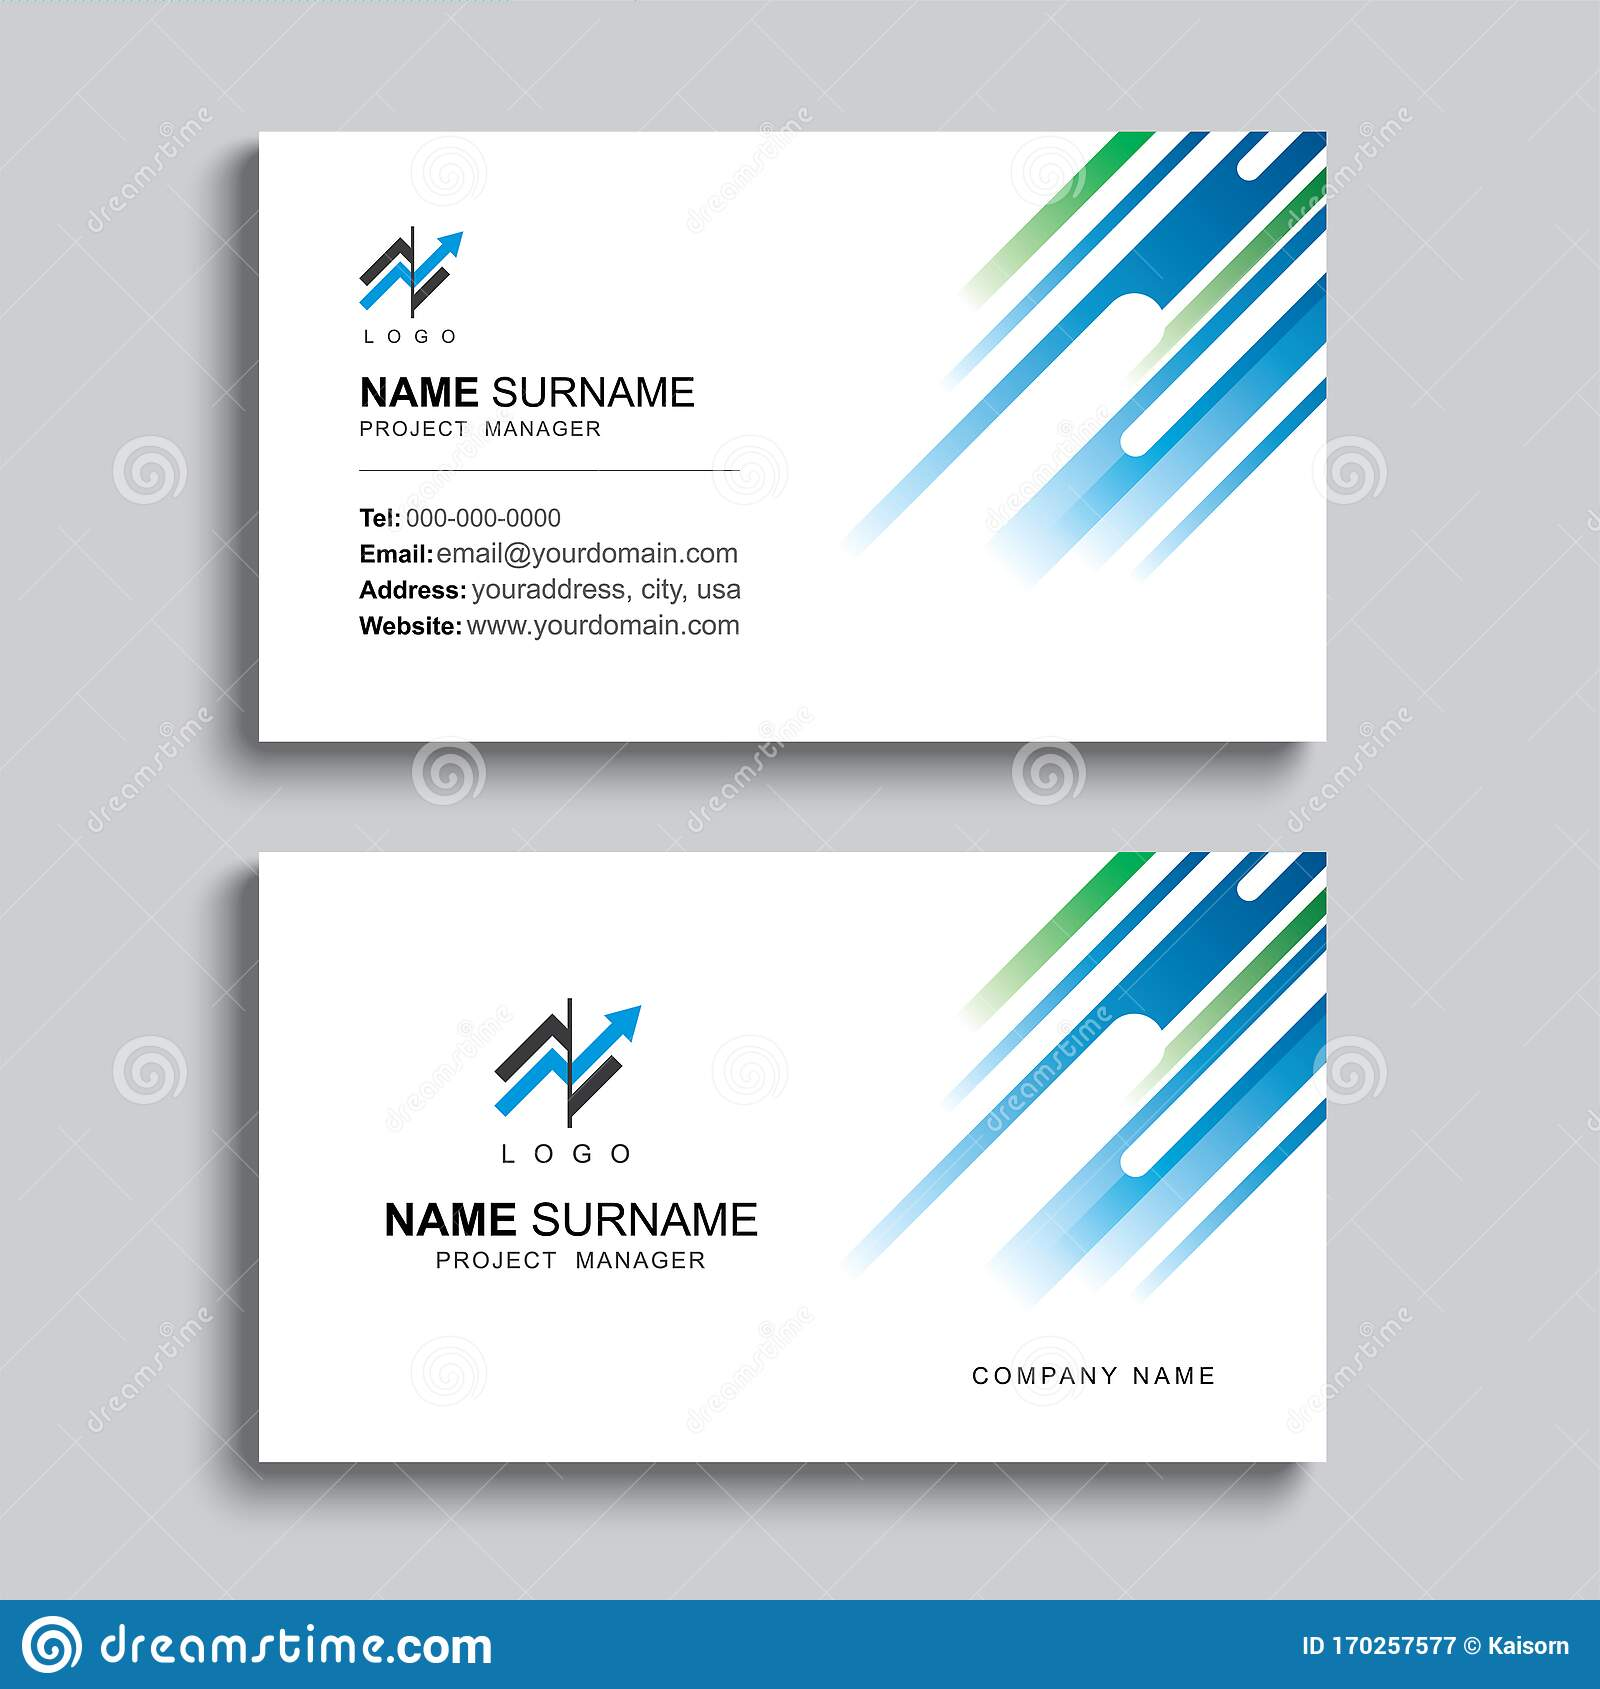 Minimal Business Card Print Template Design. Blue and Green Color For Template For Cards To Print Free